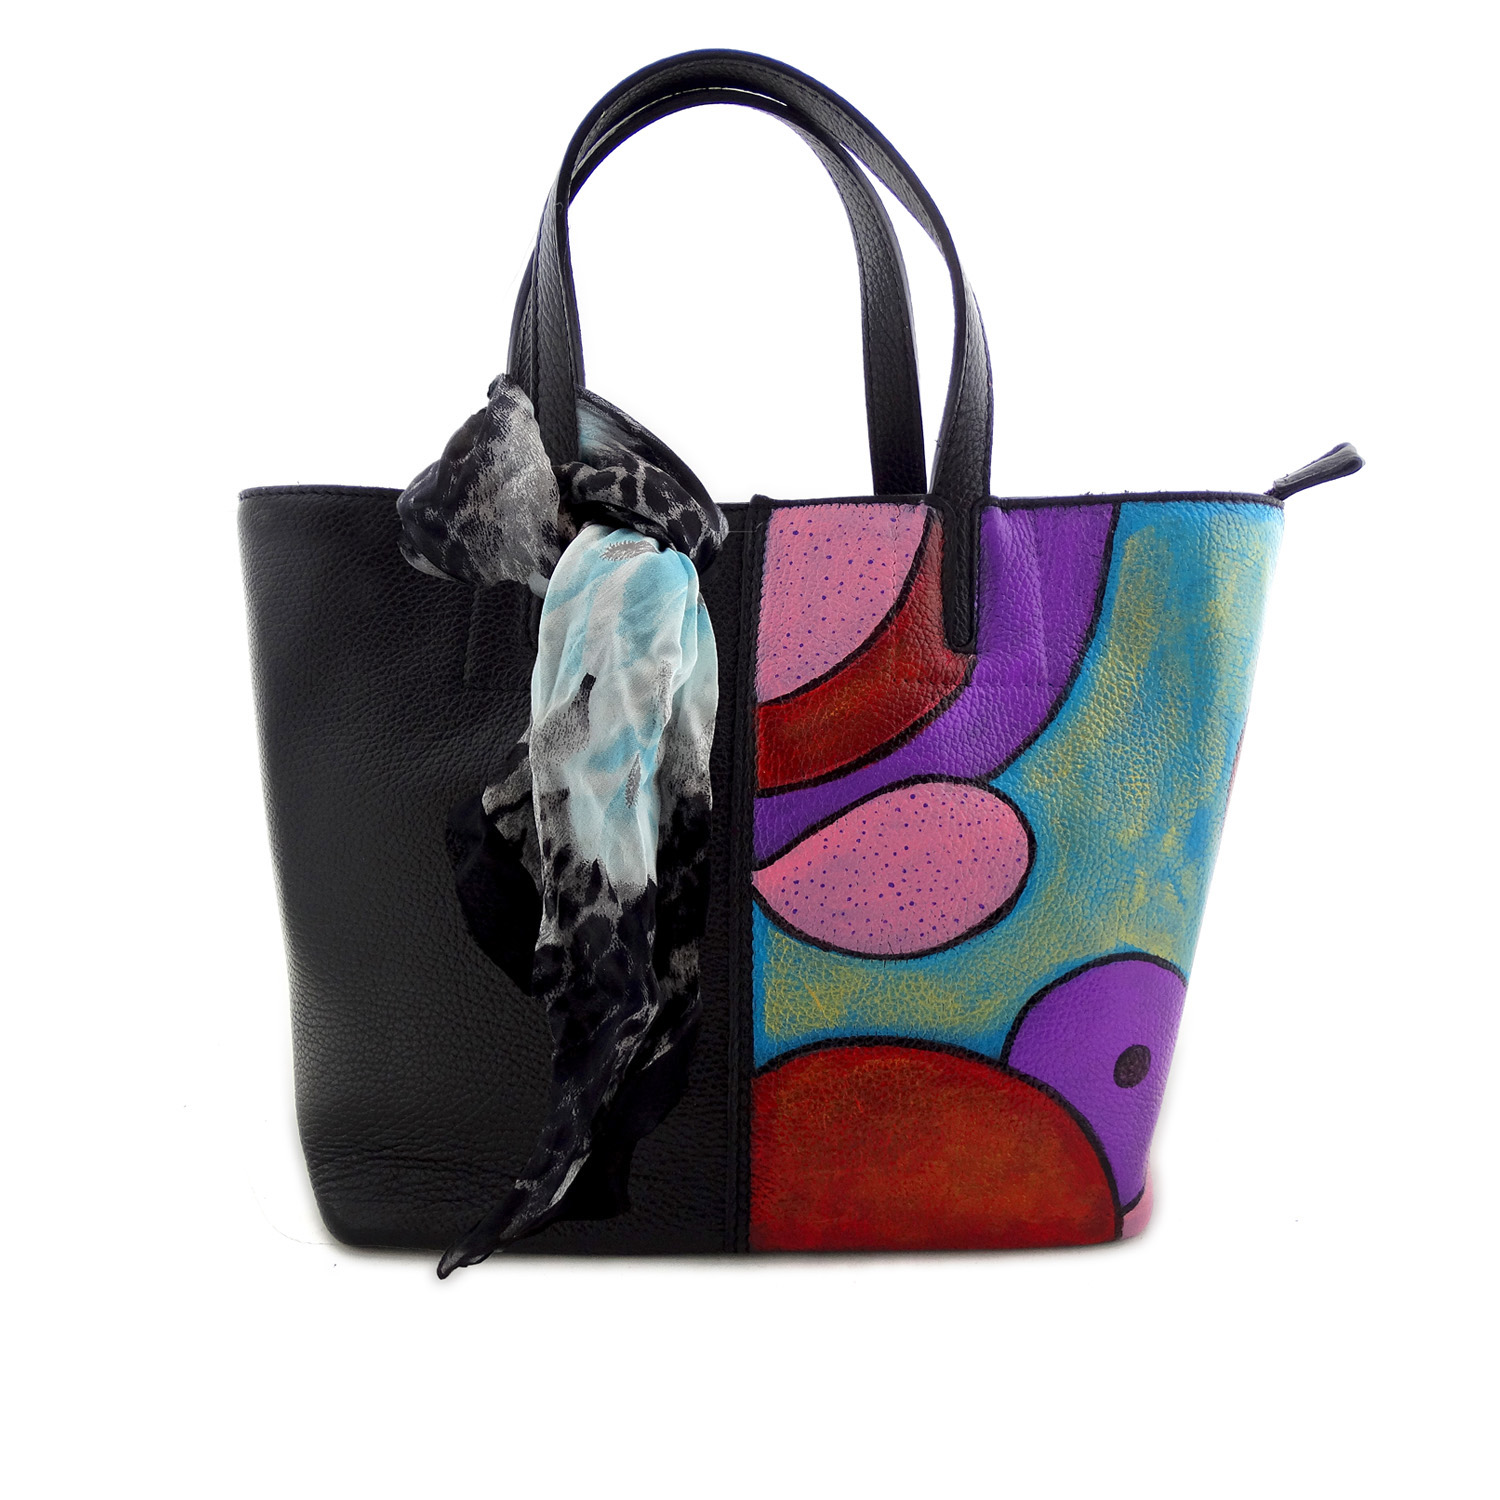 Hand-painted bag - Sweet confusion